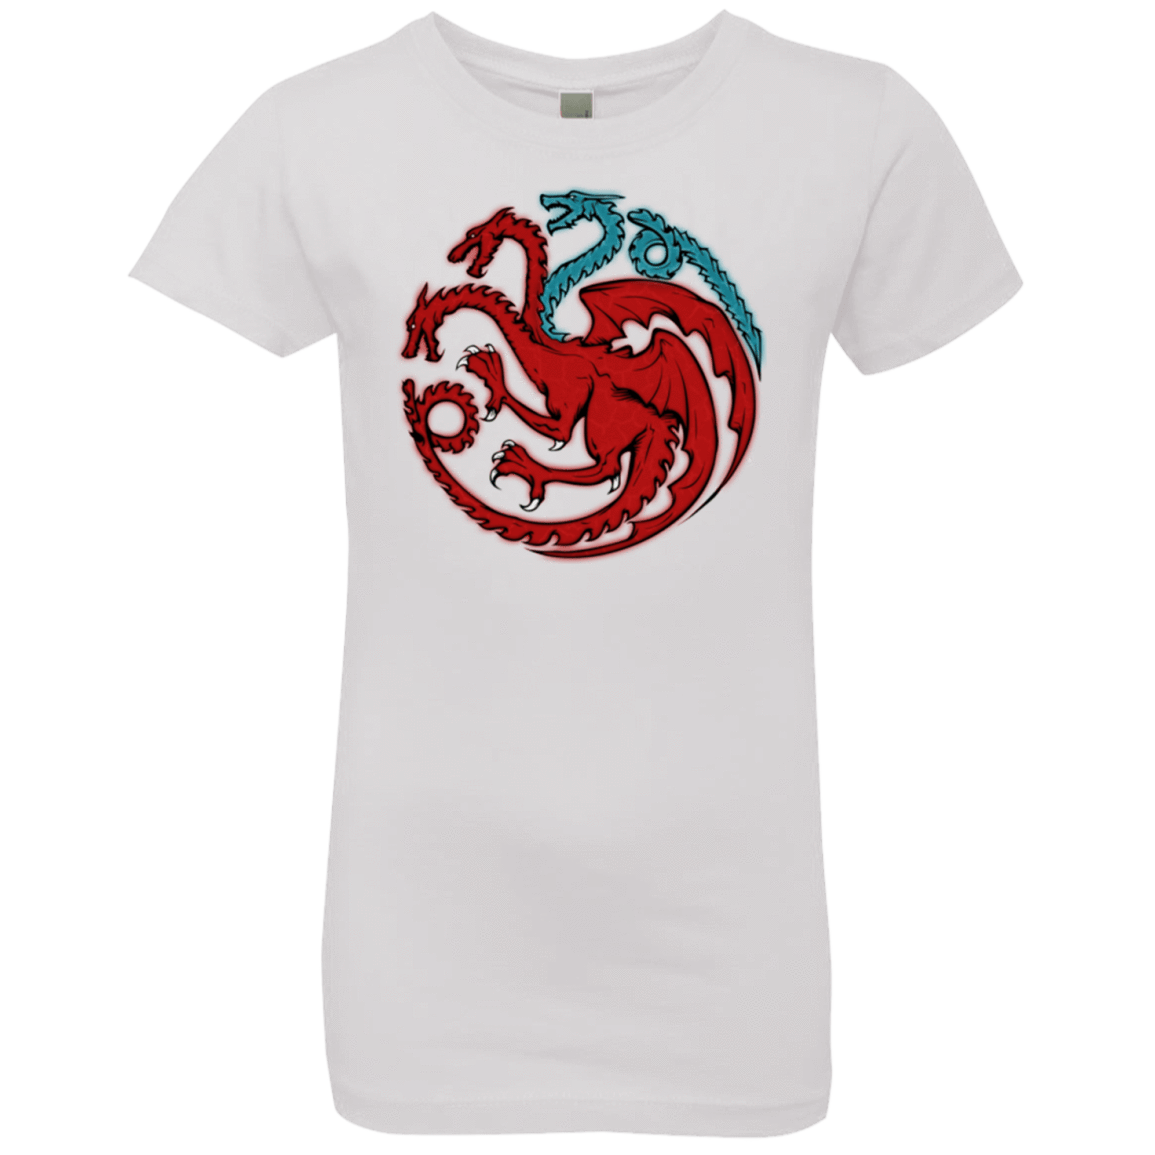 T-Shirts White / YXS Trinity of fire and ice V2 Girls Premium T-Shirt